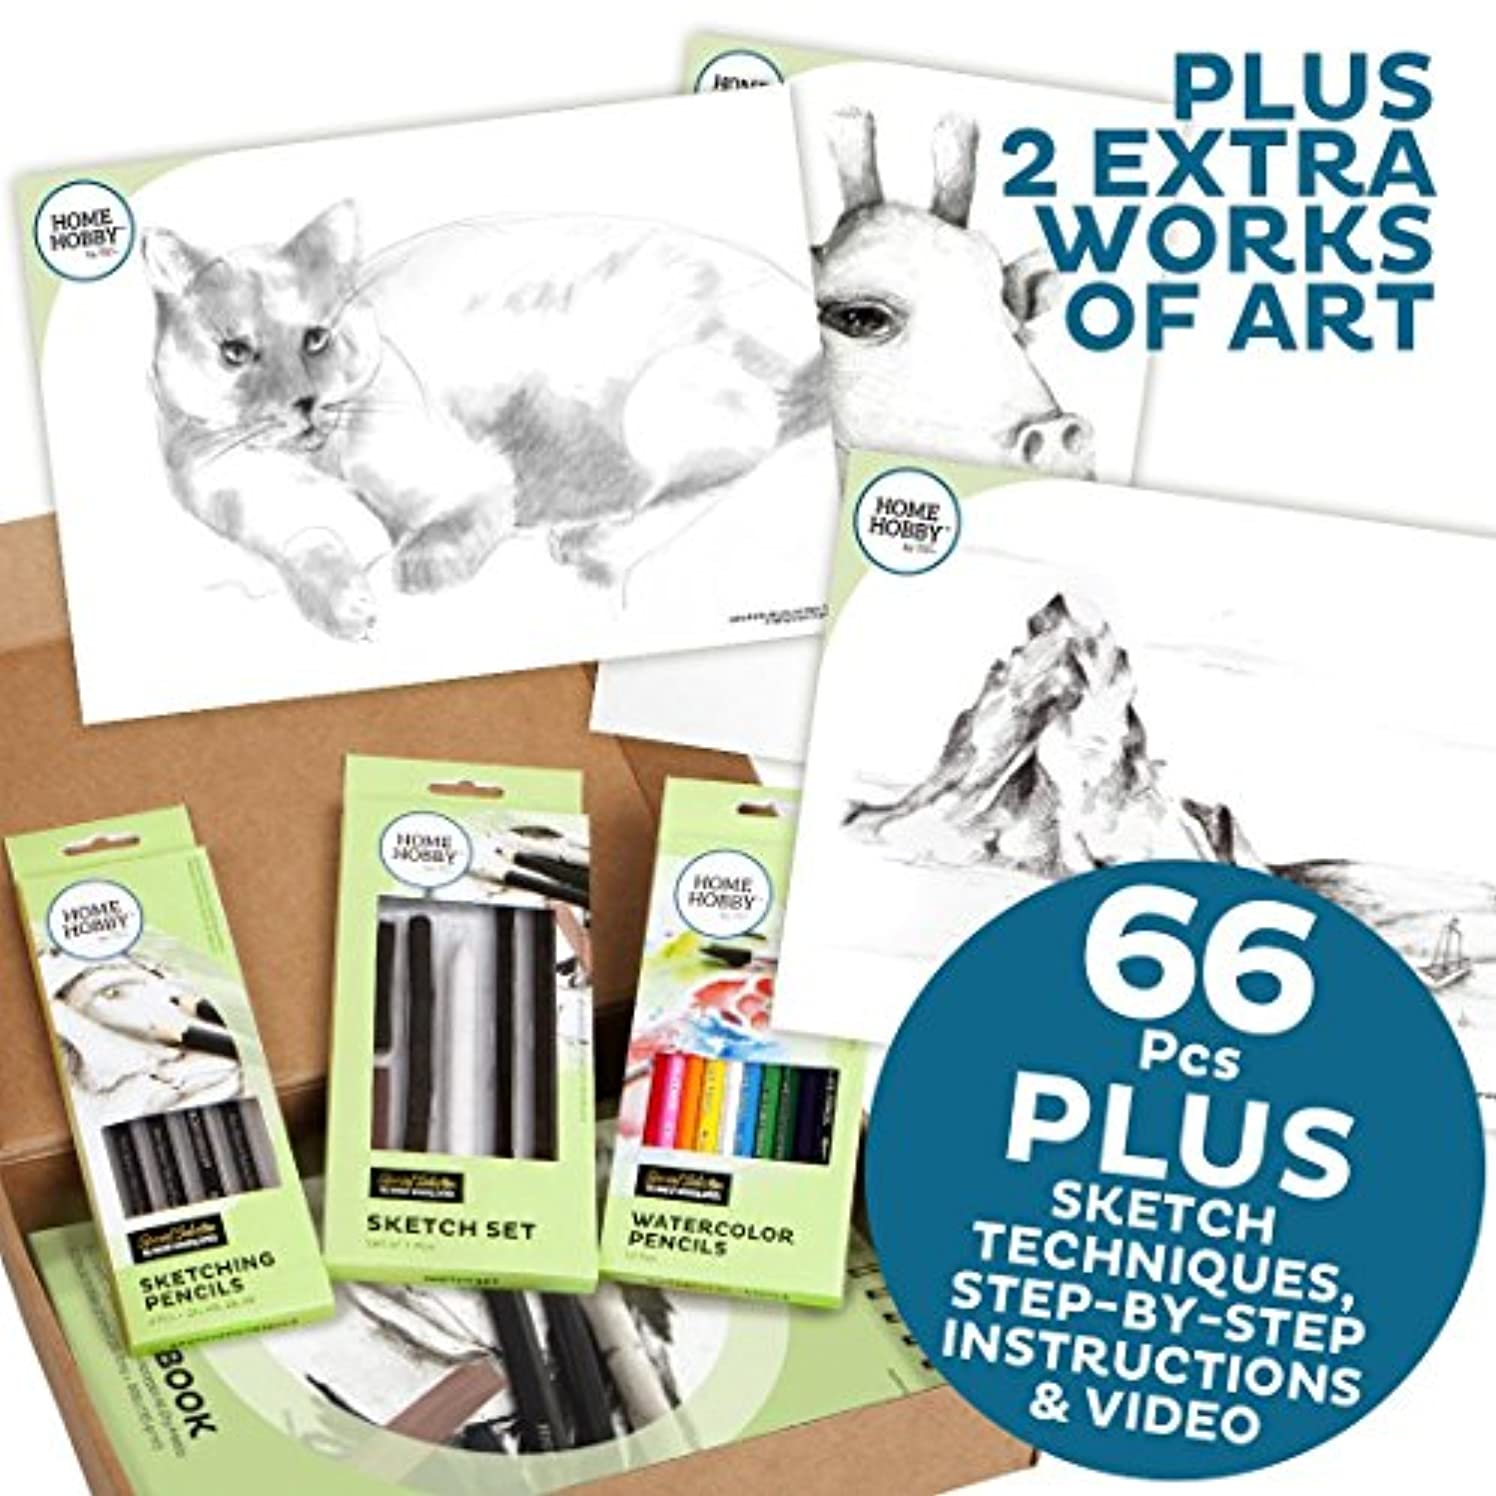 THE HOMEHOBBY BY 3L SKETCH STUDIO KITPLUS 14209 - CAT BY ROBIN BERRY